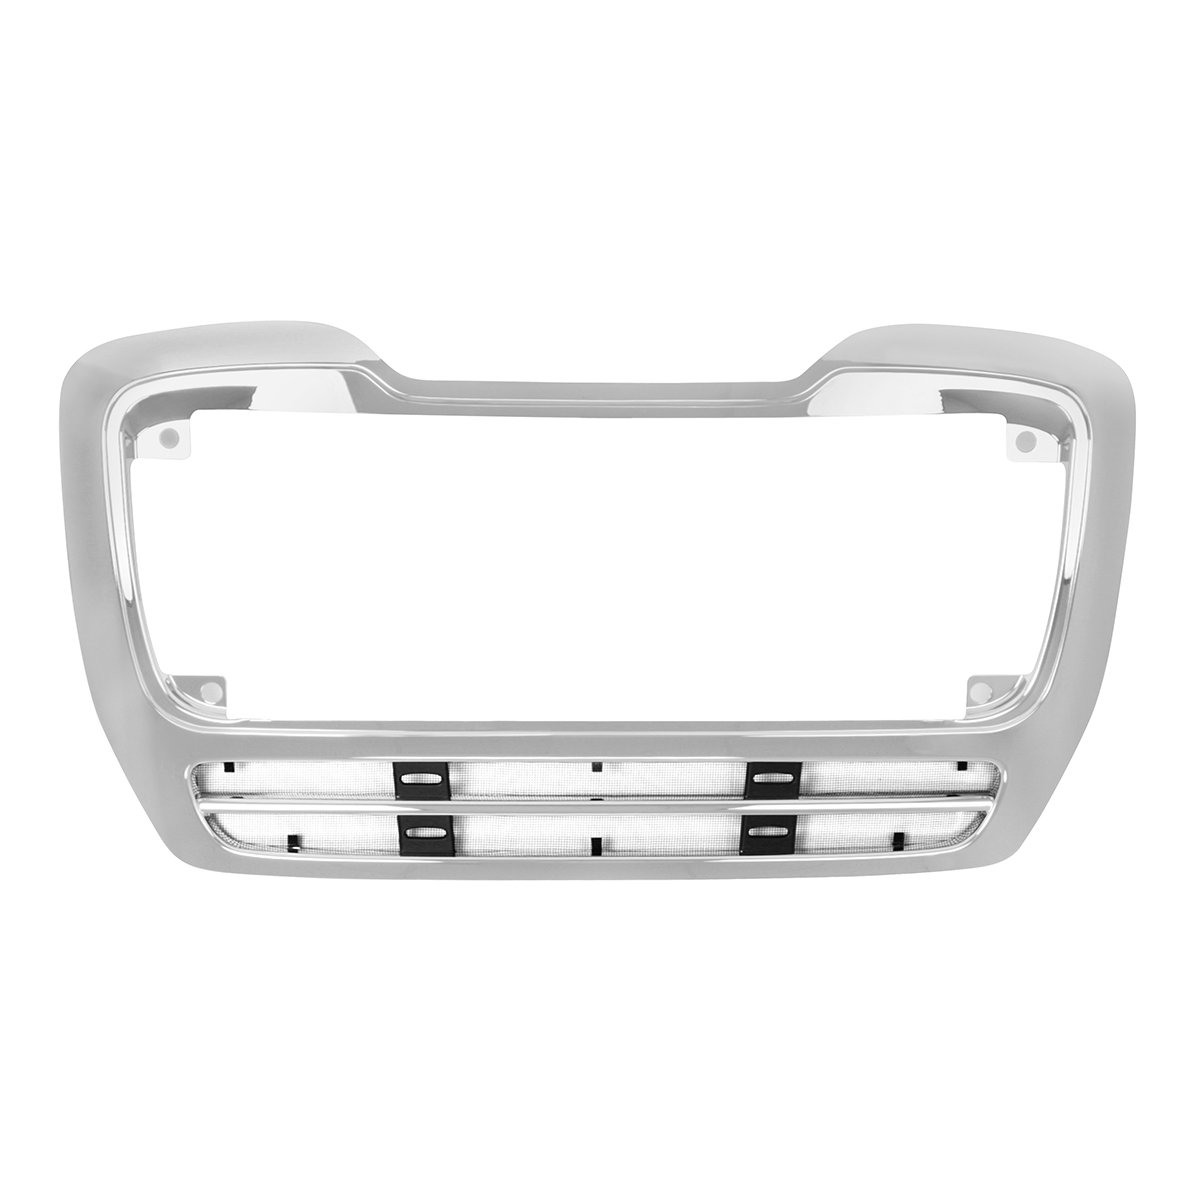 Grand General 89304 Chrome Plastic Grille Surround with Black Steel Bug Screen for M2 112 Freightliner